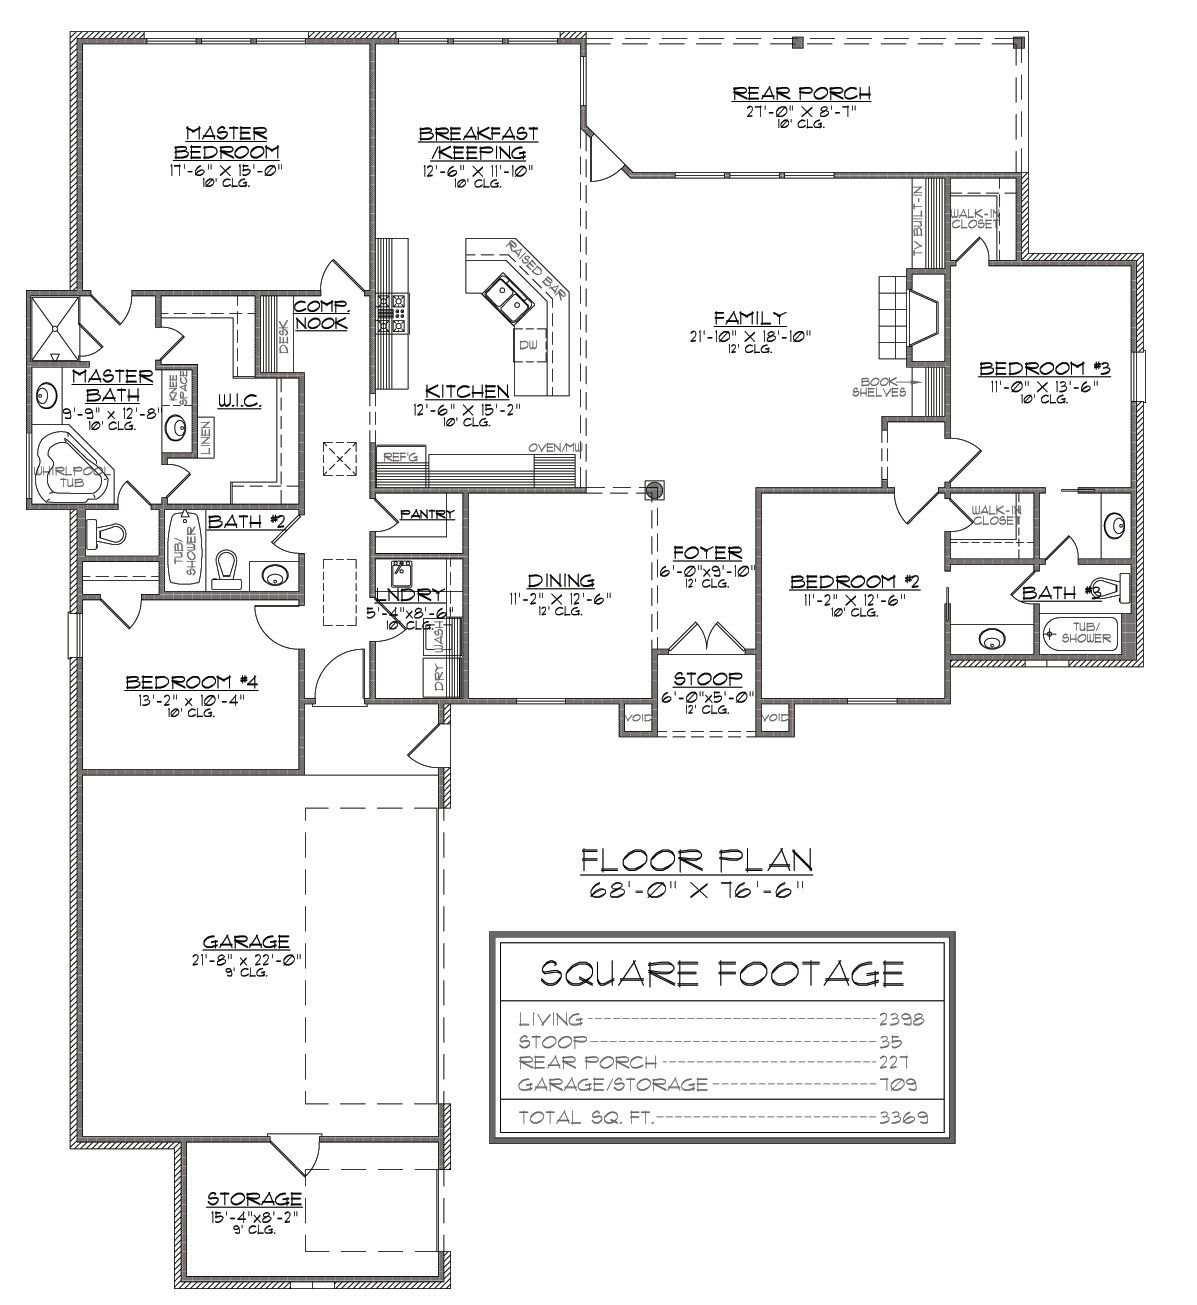 Madden Home Design The Avoyelles Madden Home Design French Country House Plans Acadian House Plans